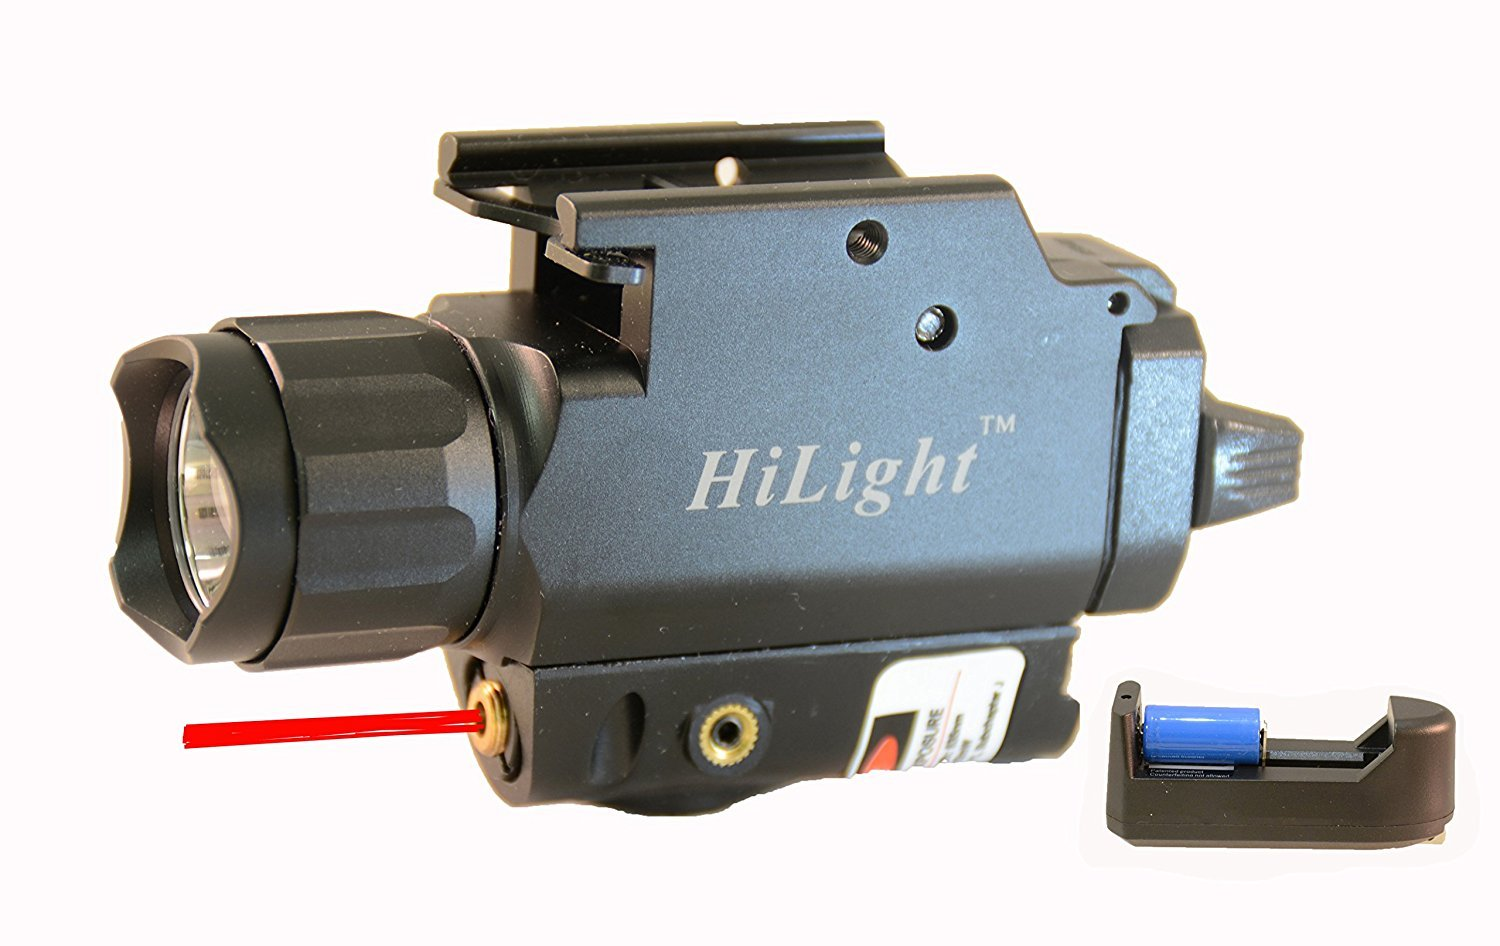 HiLight 500 Lumen Rail-Mounted Tactical Pistol Flashlight and Laser Sight Combo (w/Red Laser)